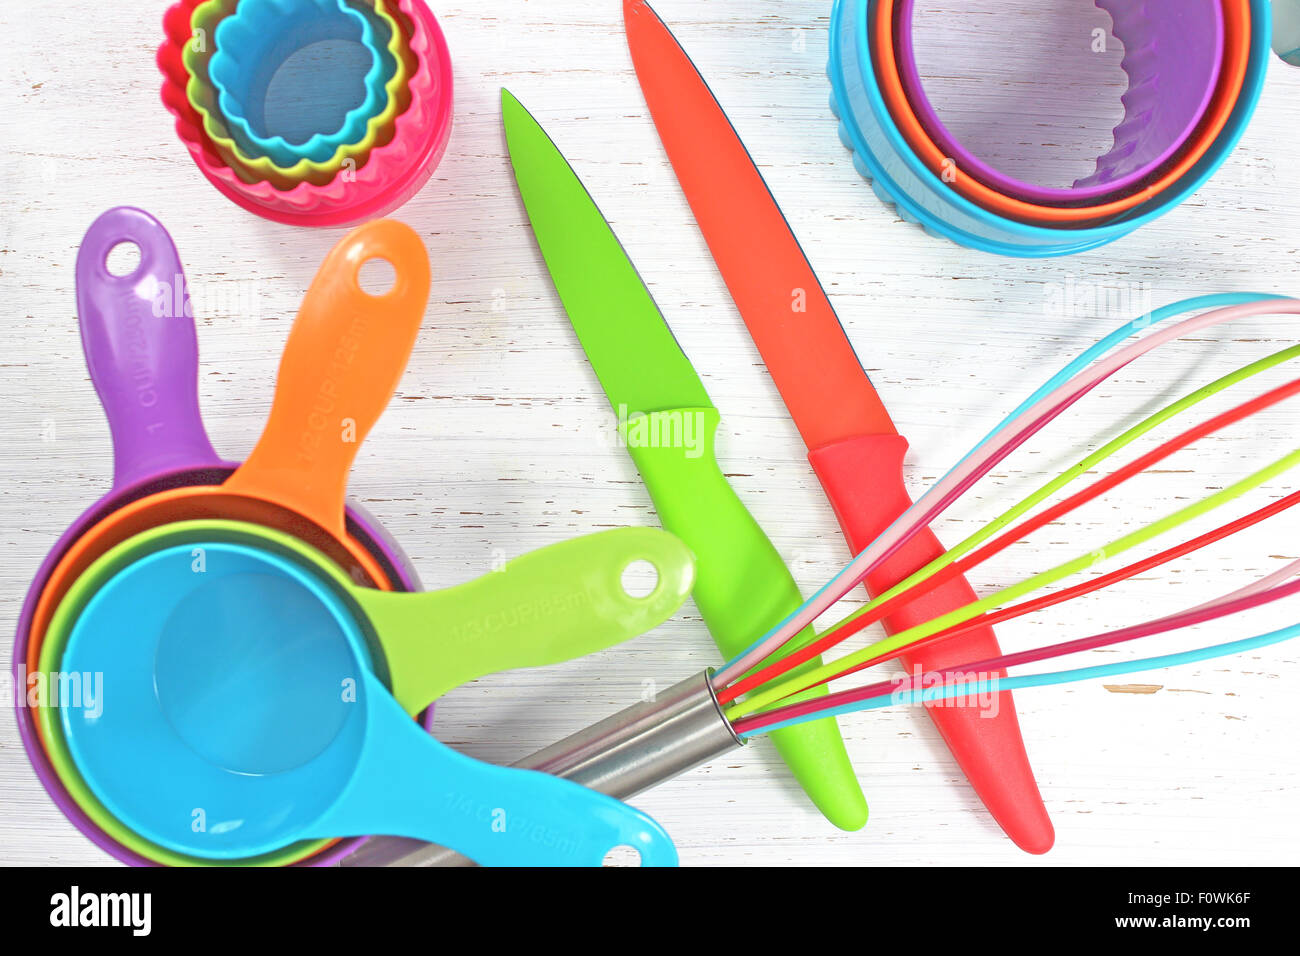 colorful kitchen utensils on white rustic background - Stock Image